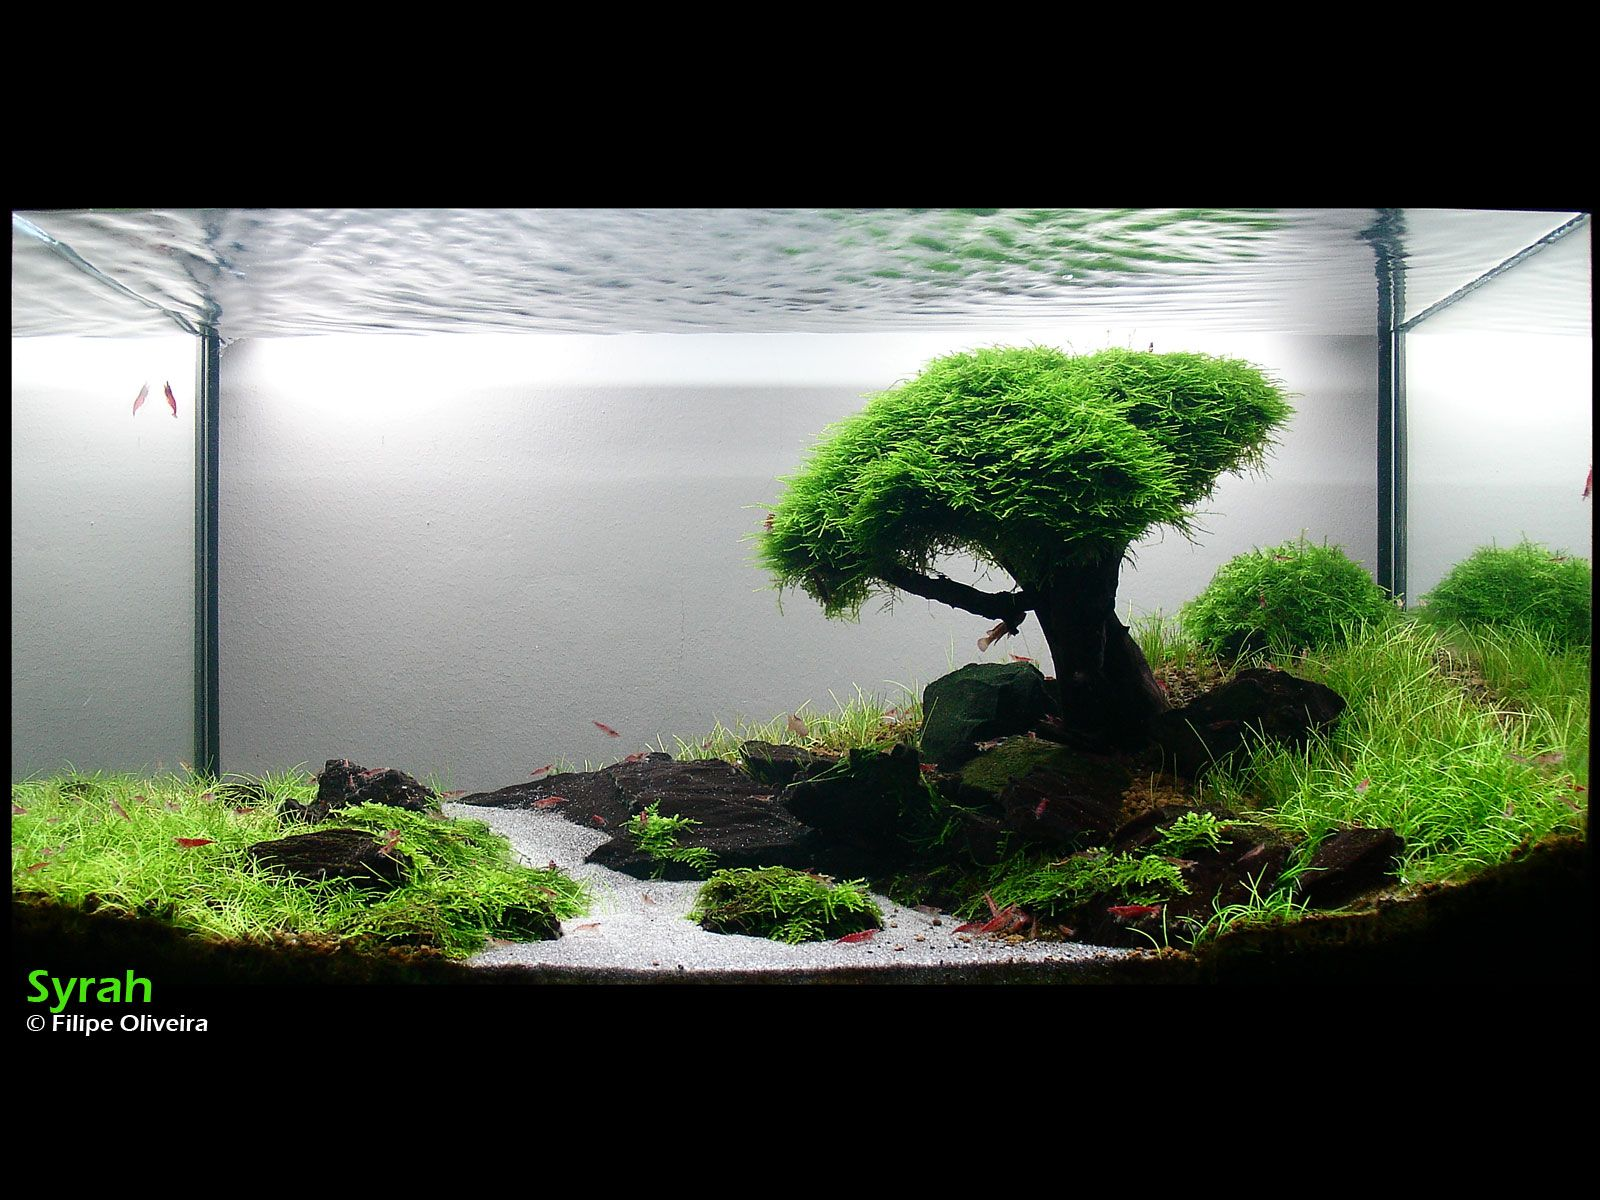 Wow Now That Is A Cool Aquarium Magnifique Aquarium J Aimerais